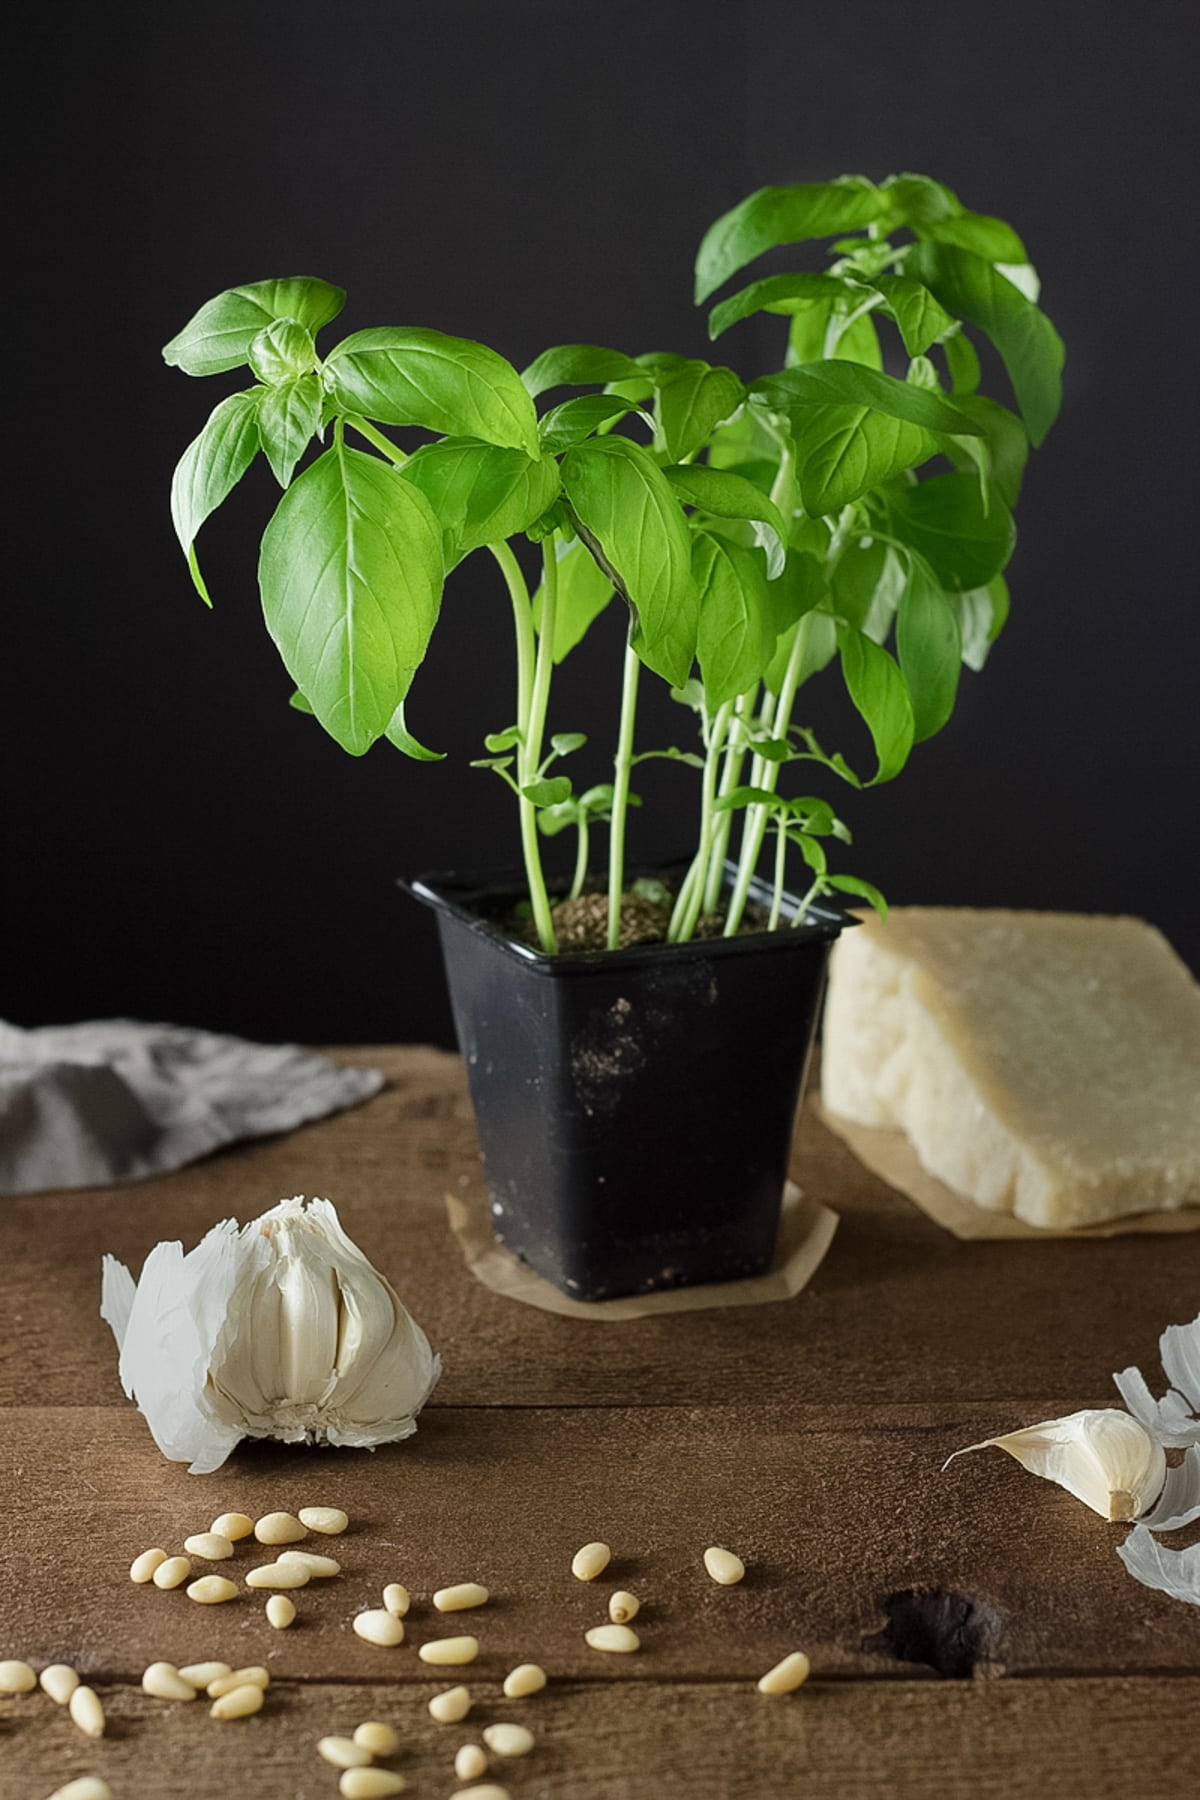 Ingredients for pesto, including basil, parmesan cheese, garlic and pine nuts.